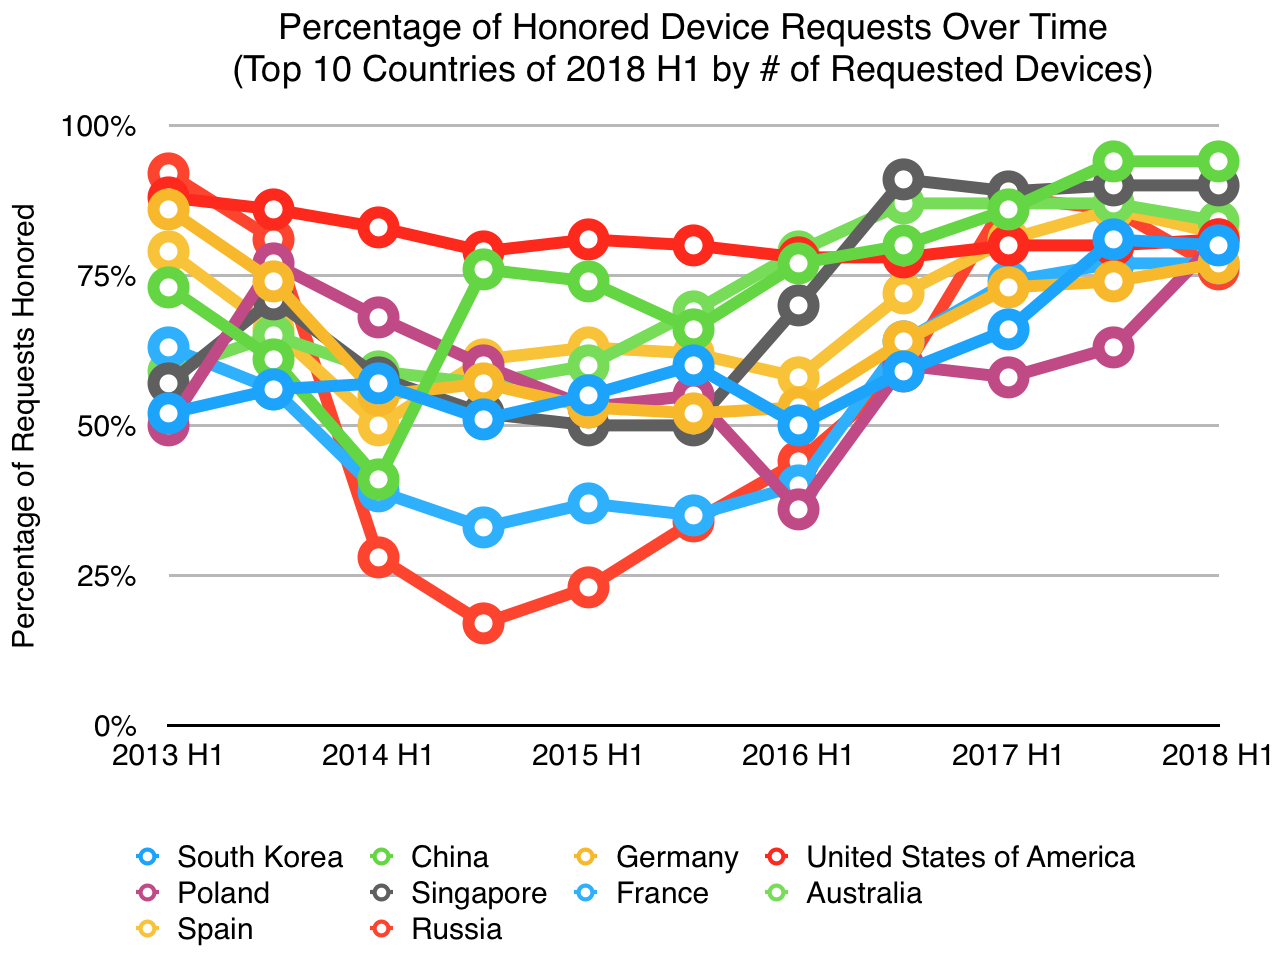 The countries generating the majority of the device requests are tending towards higher quality.